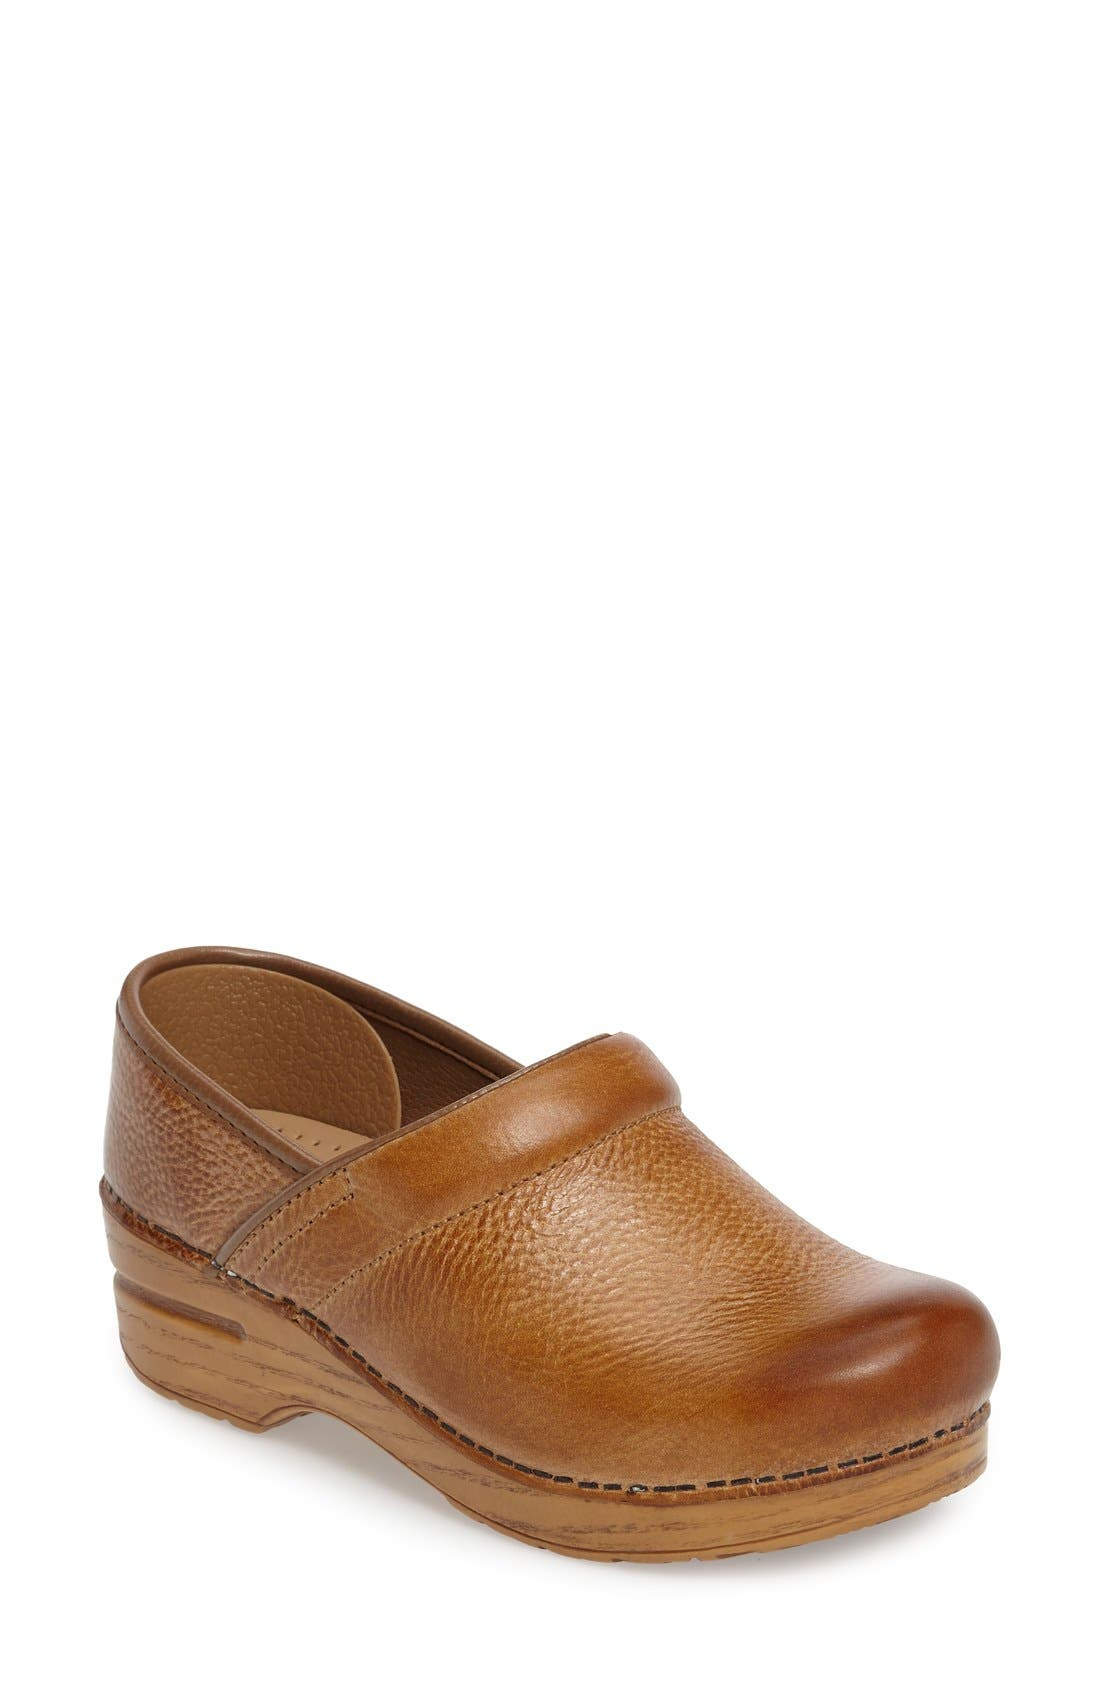 Distressed Professional Clog,                         Main,                         color, Honey Leather